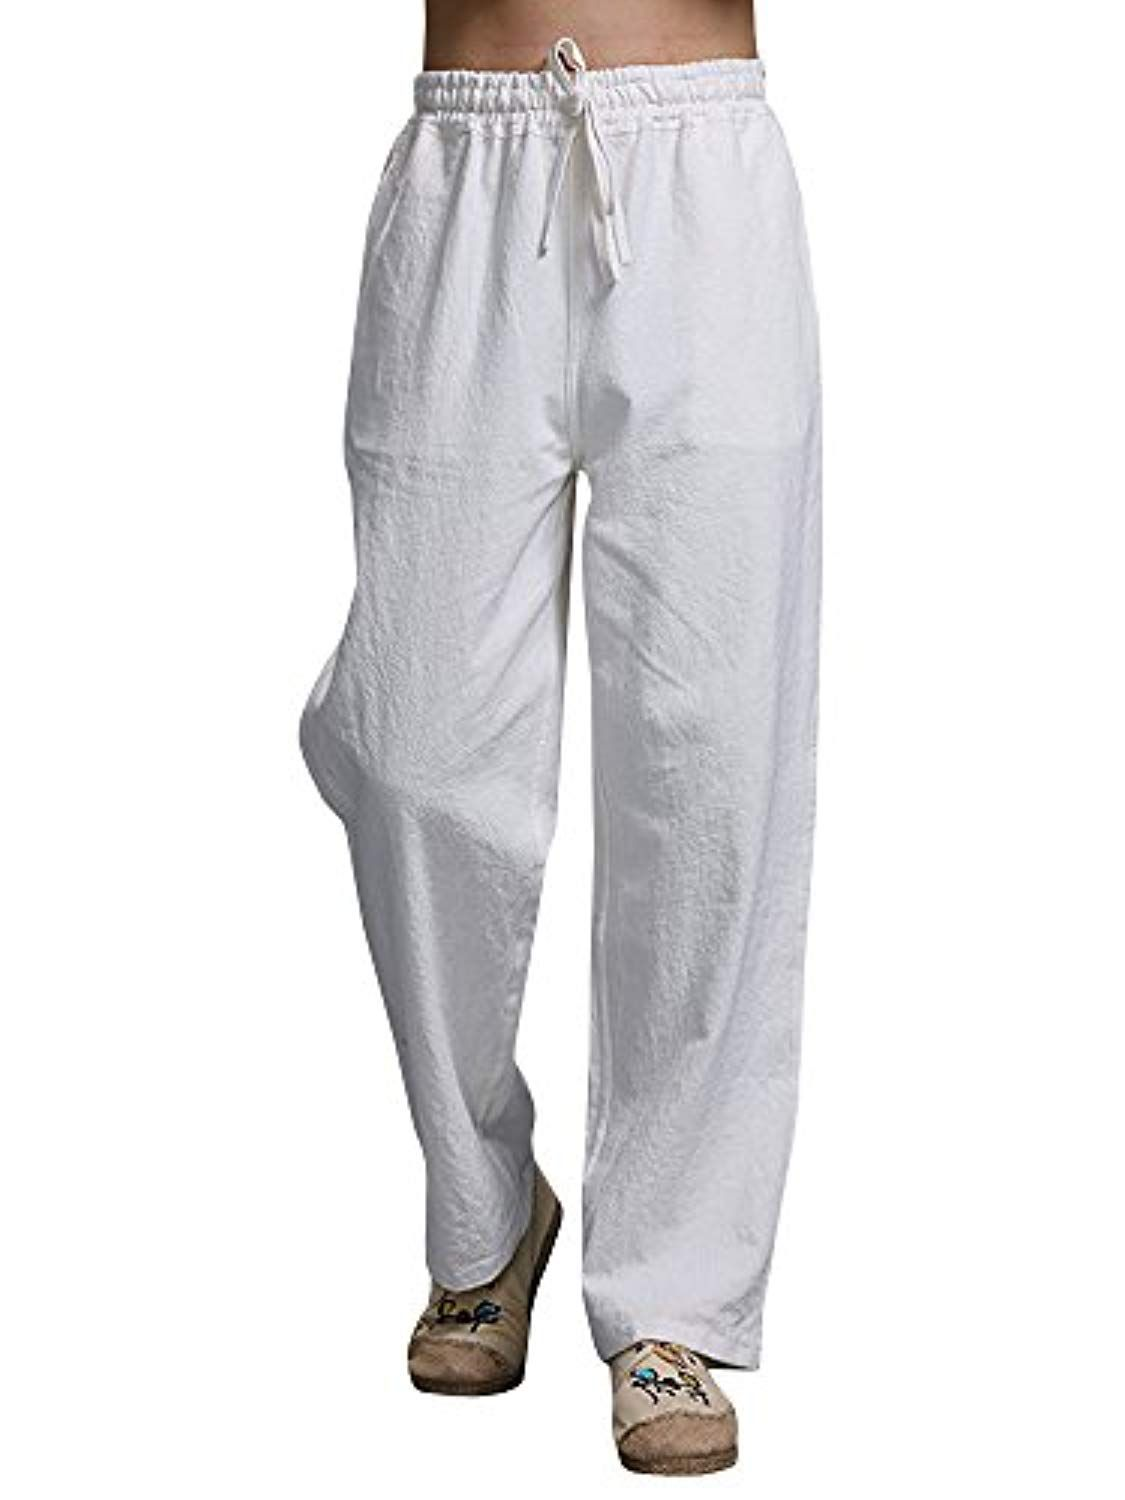 398b0b8187 Men's Casual Loose Straight Leg Elastic Waist Linen Beach Pants Trousers  Drawstring *** Details can be found by clicking on the image.